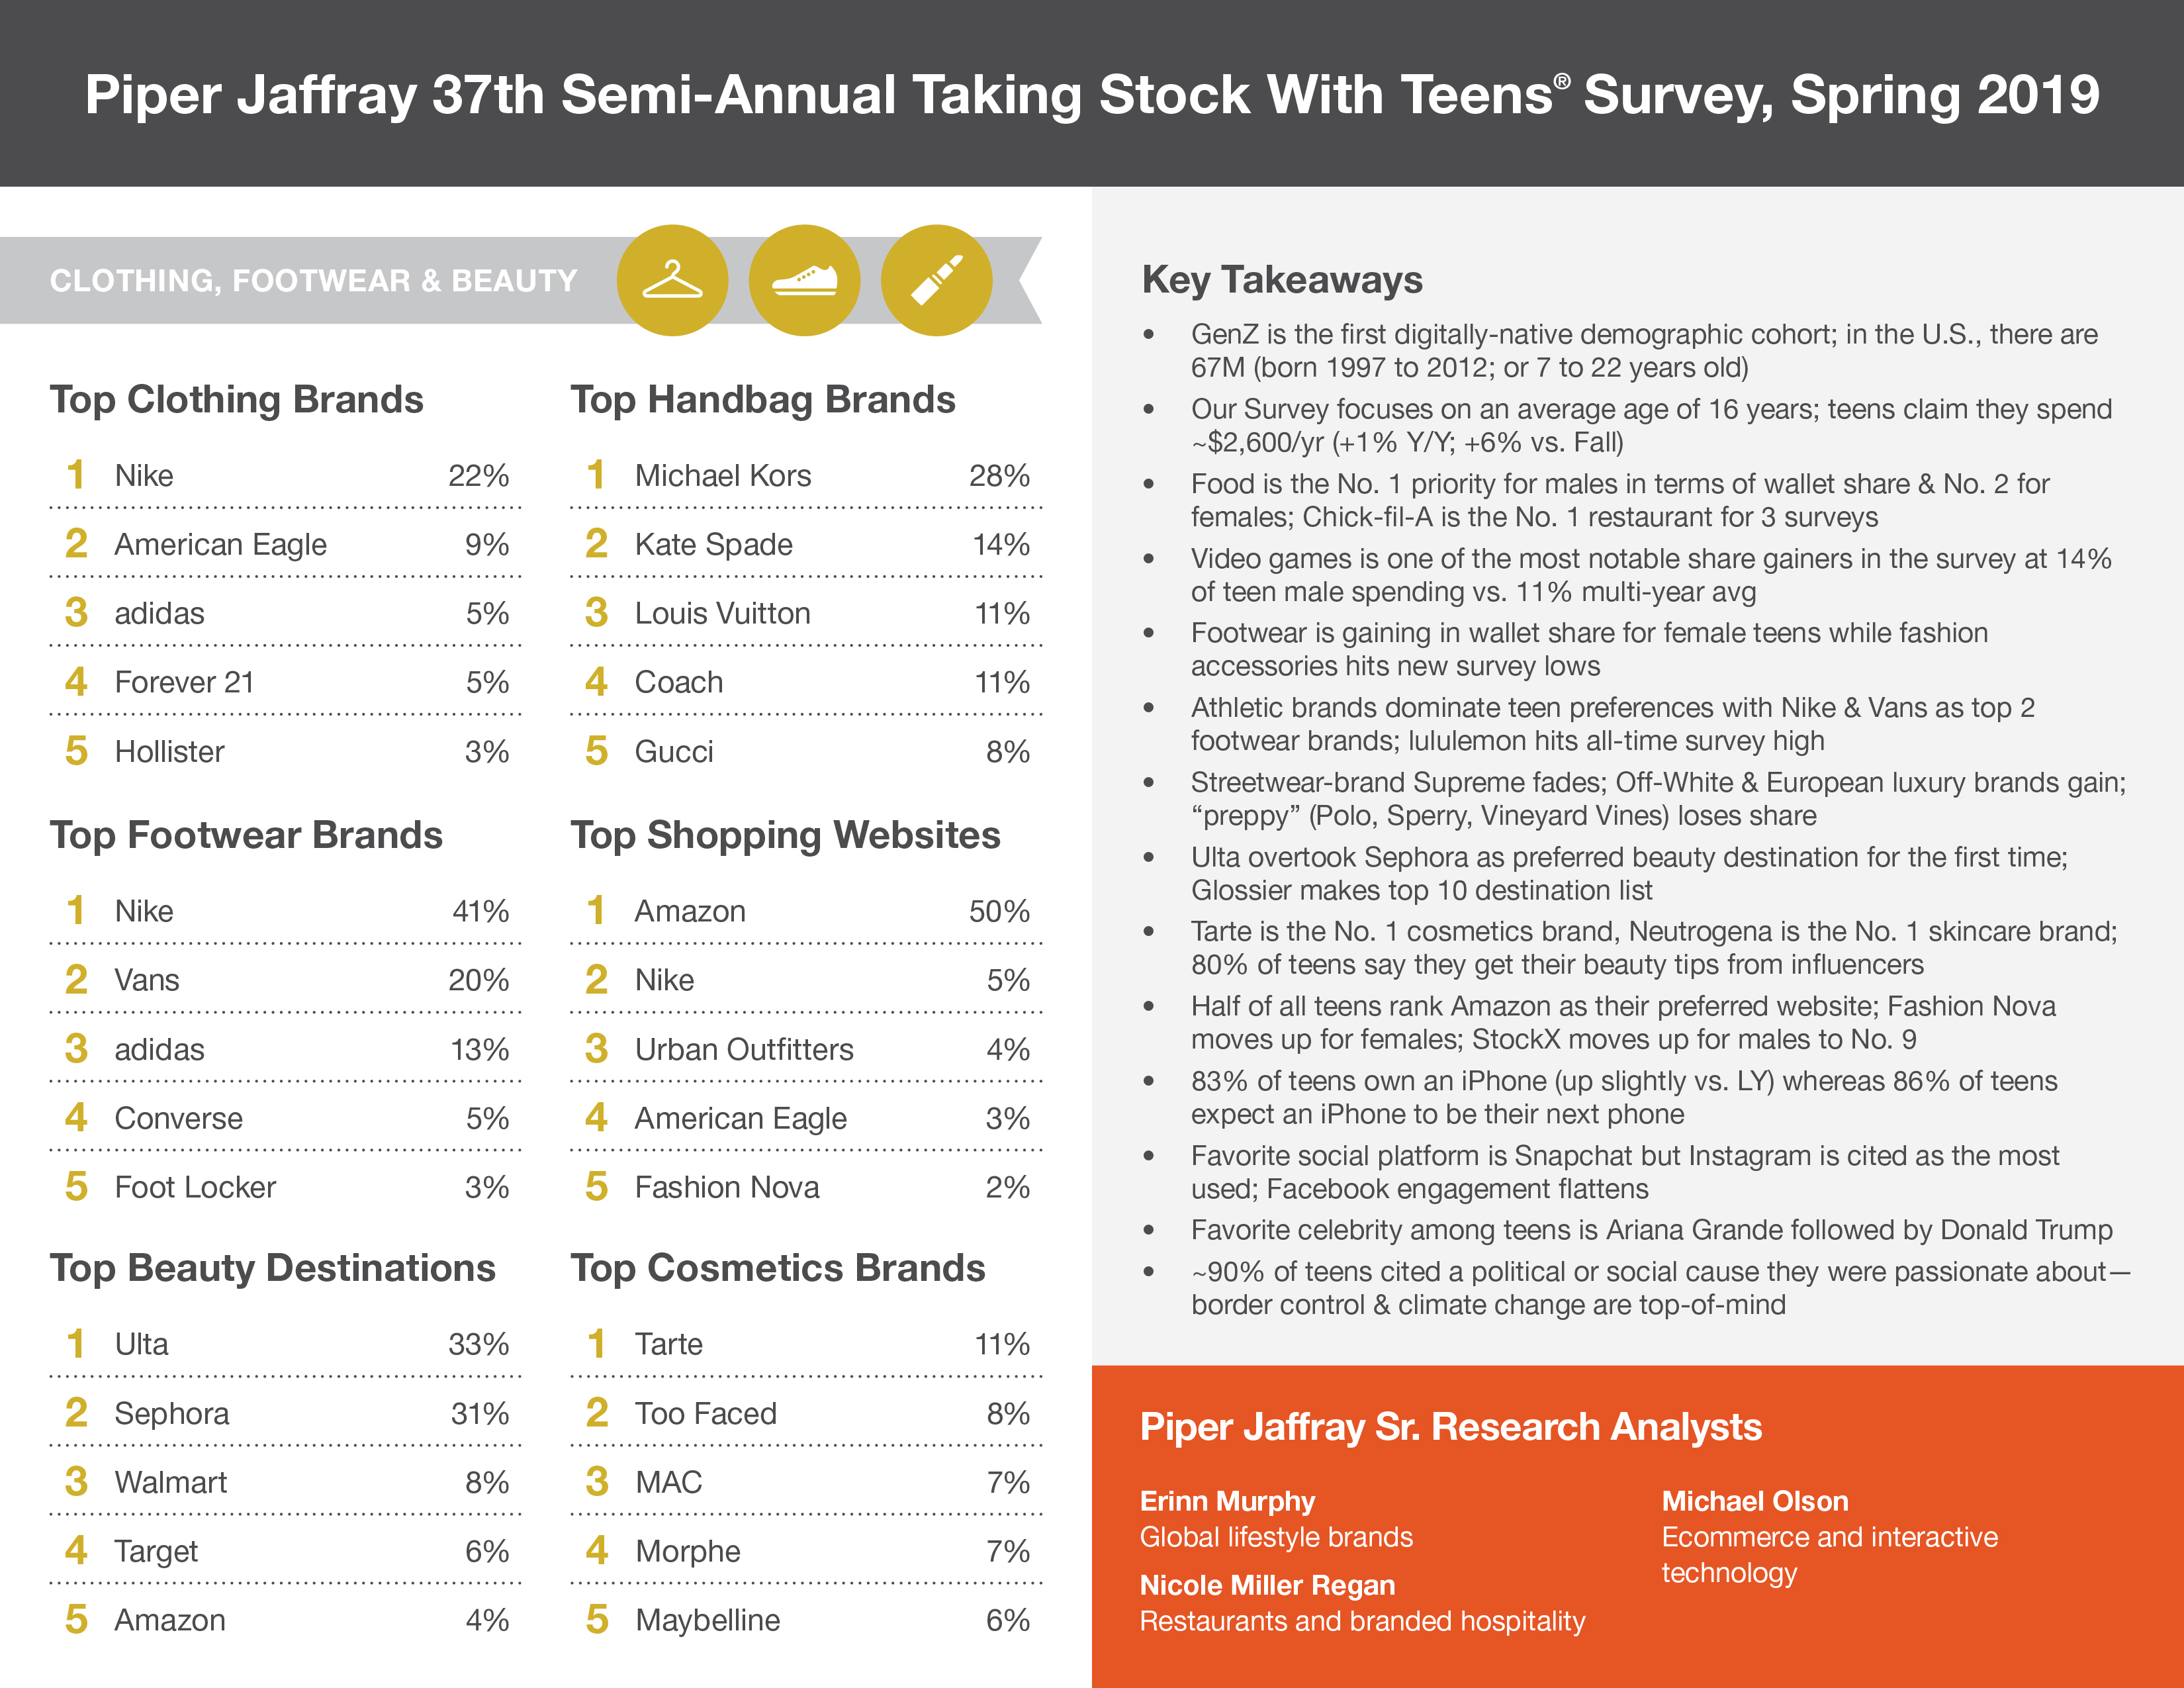 Piper Jaffray Completes Semi-Annual Generation Z Survey of